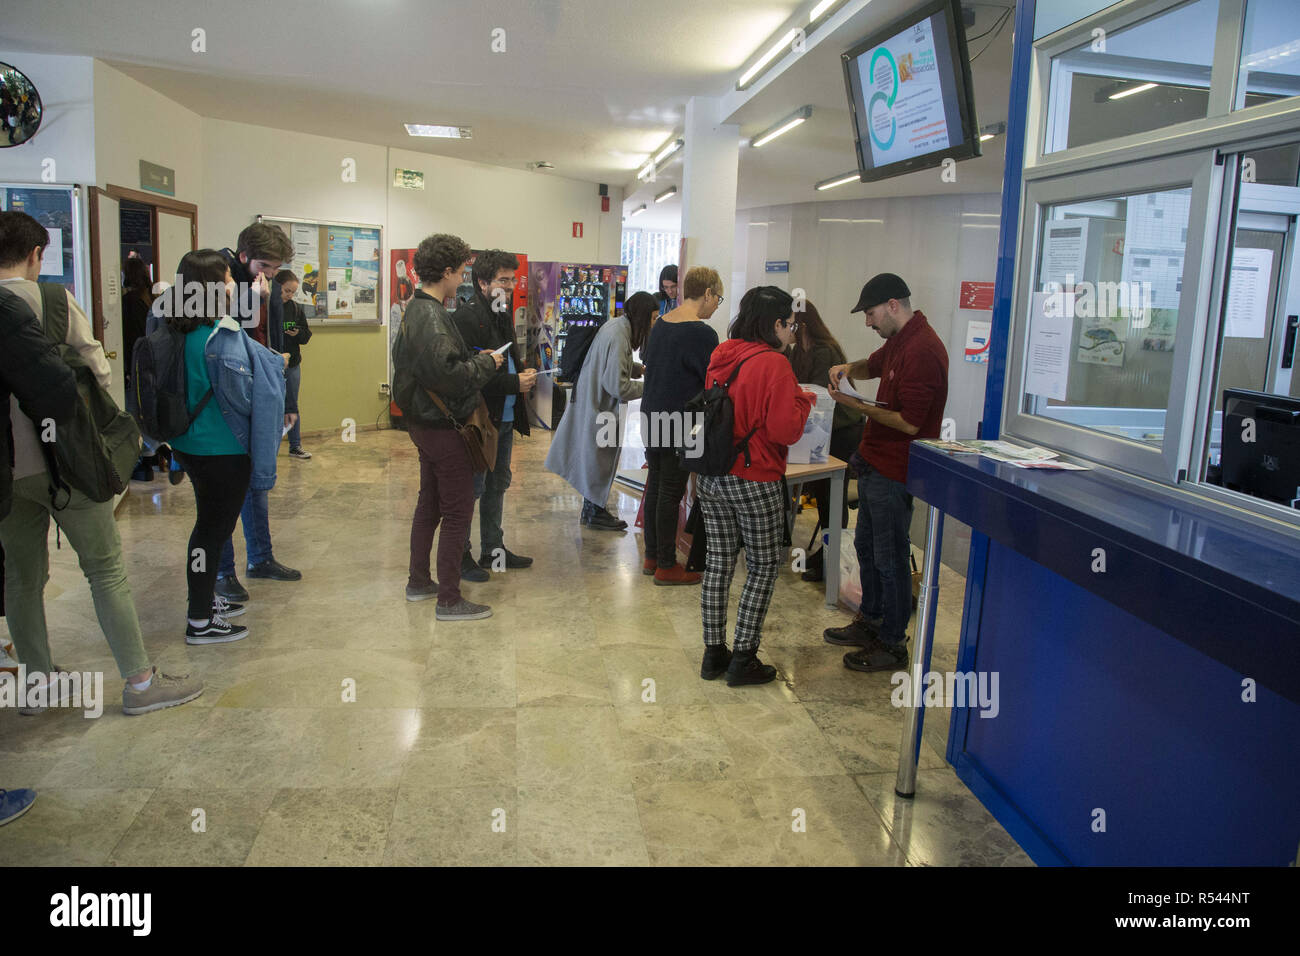 November 29, 2018 - Madrid, Spain - Students seen queuing up to vote during the referendum at the Faculty of Business..Volunteers from the Autonomous University of Madrid initiated the consultative referendum to decide if the thousands of students, professors and workers of the university want a legitimate vote to decide the form of the Spanish state and ask if they prefer monarchy or republic. This vote would mark the first voting date that would be extended to other Spanish universities and Spanish cities. (Credit Image: © Lito Lizana/SOPA Images via ZUMA Wire) - Stock Image